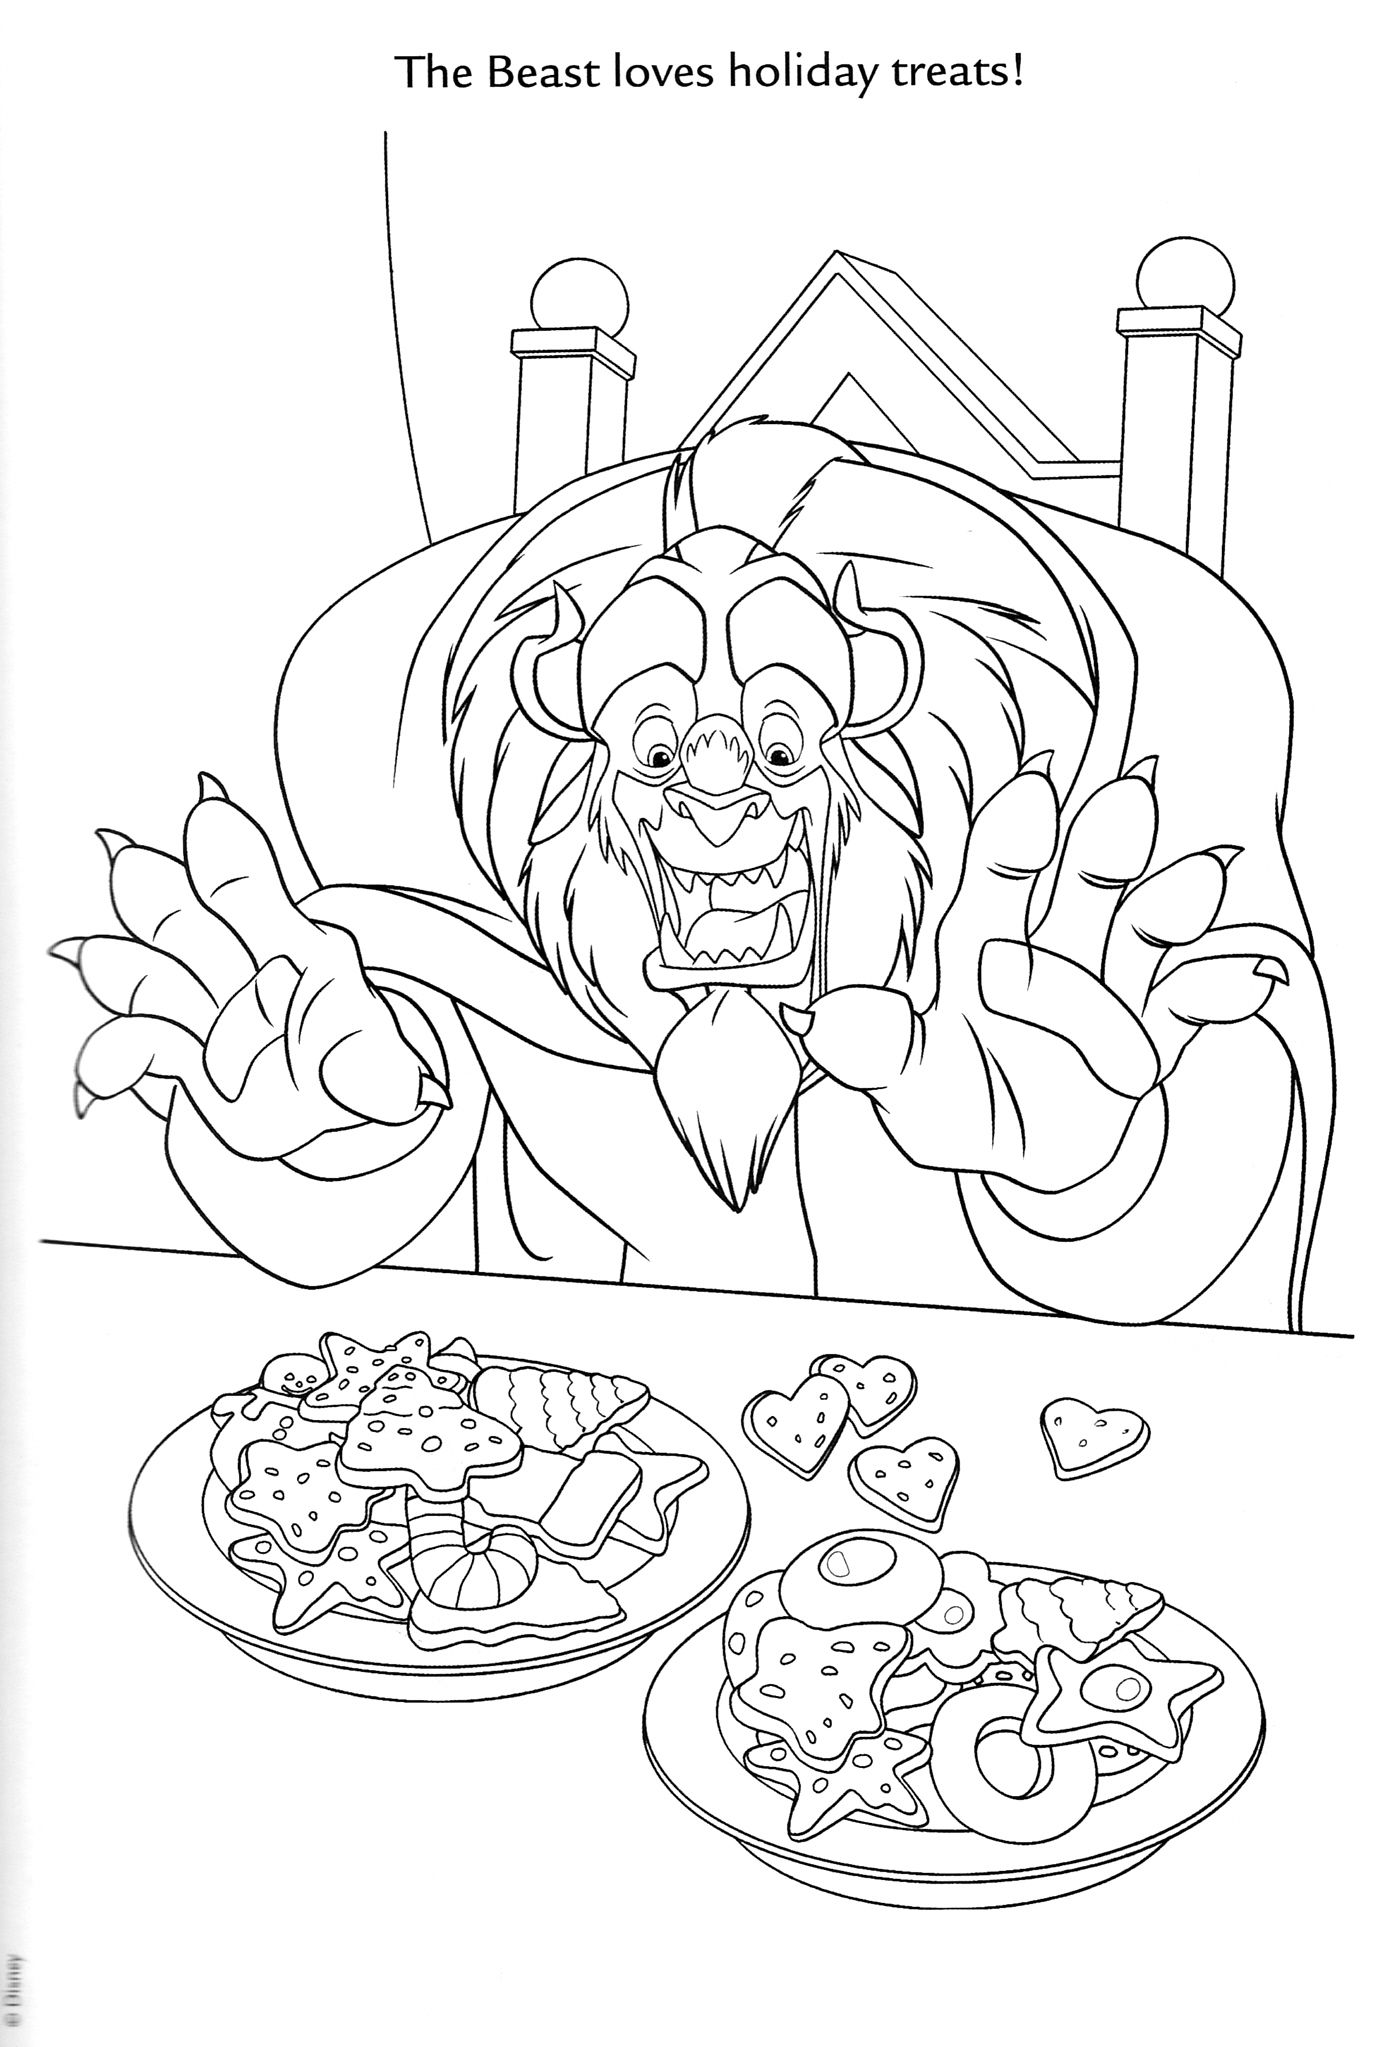 Pin by KS on Coloring-Disney   Dinosaur coloring pages ...